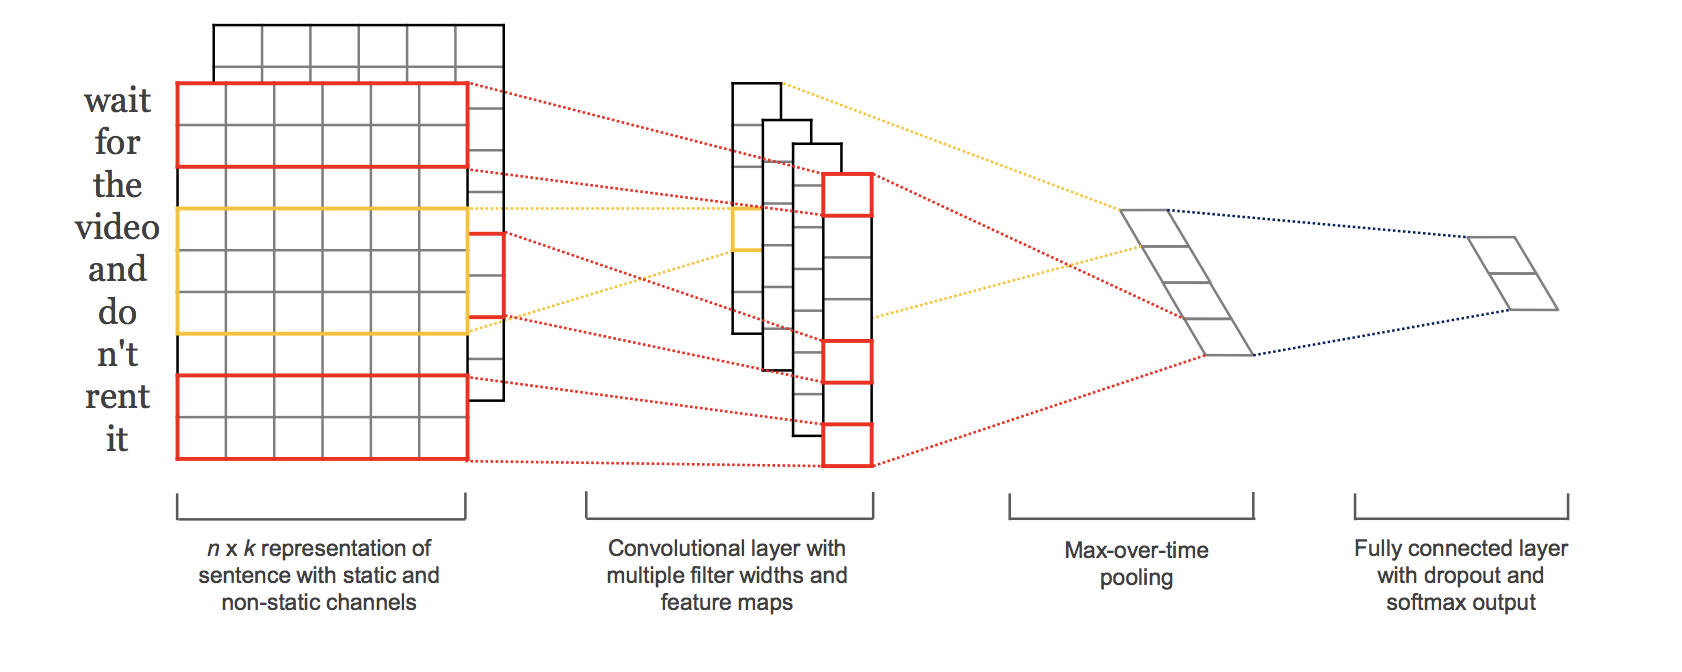 Depiction of the multiple-channel convolutional neural network for text